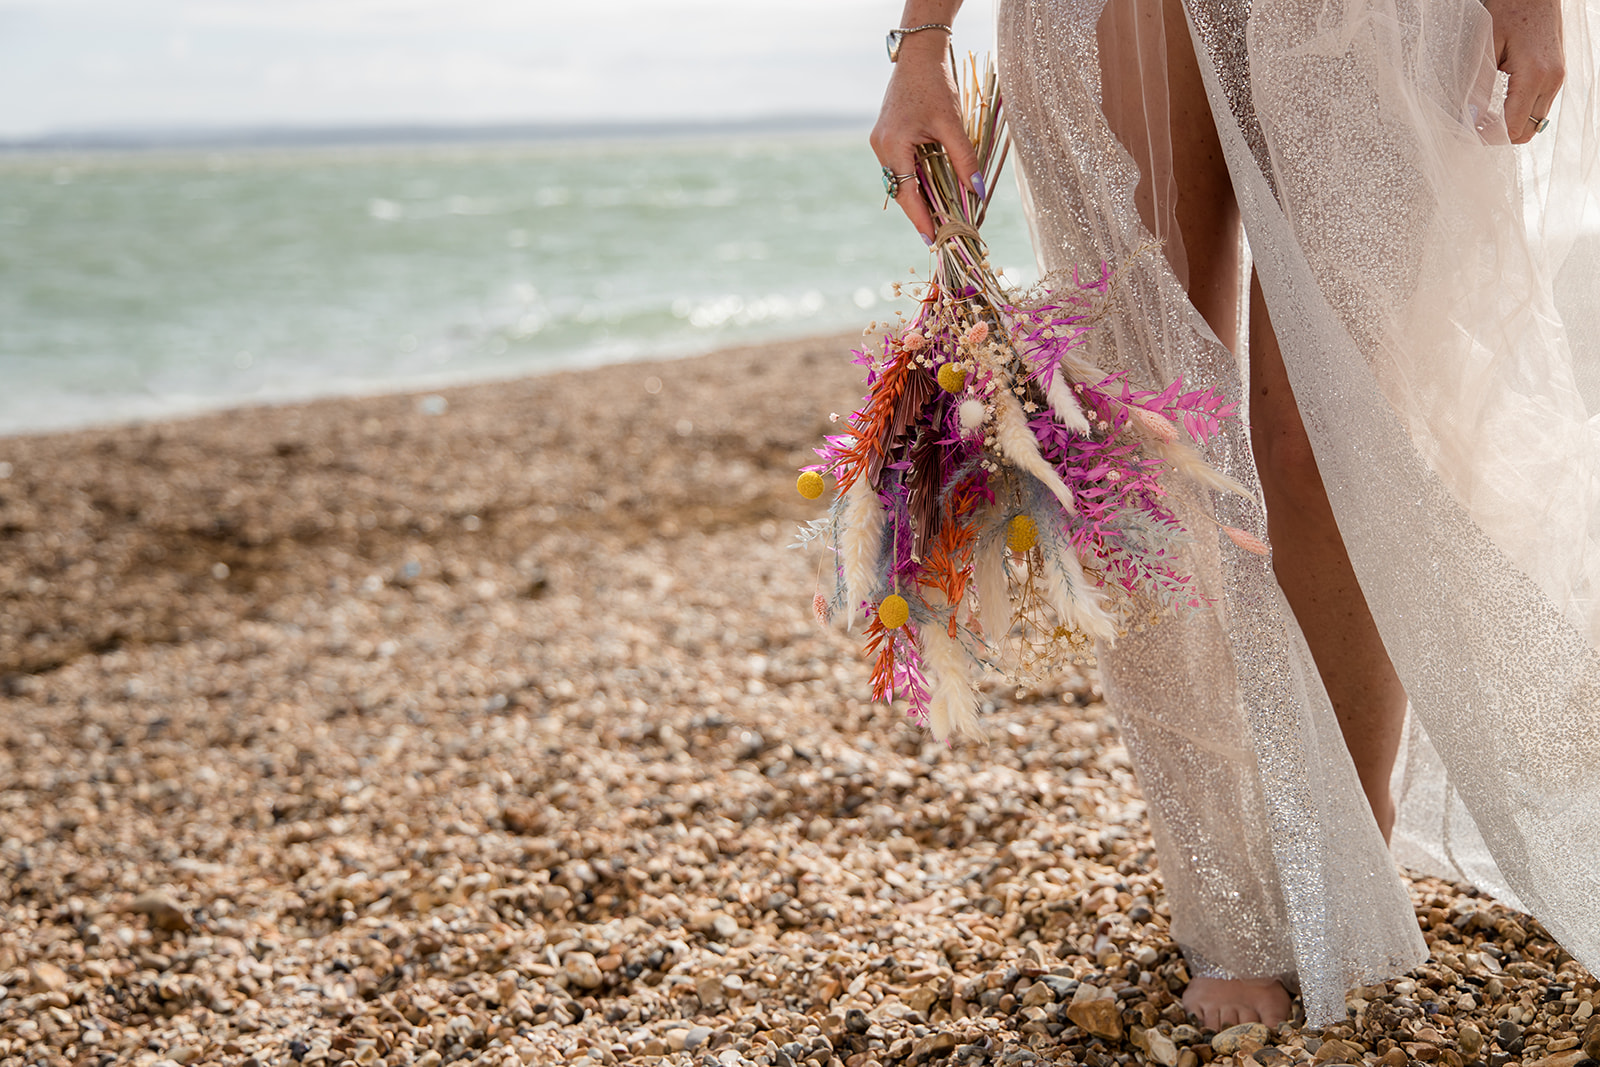 mermaid wedding - beach wedding - quirky wedding - unique wedding - alternative seaside wedding - colourful wedding flowers - dried wedding flowers